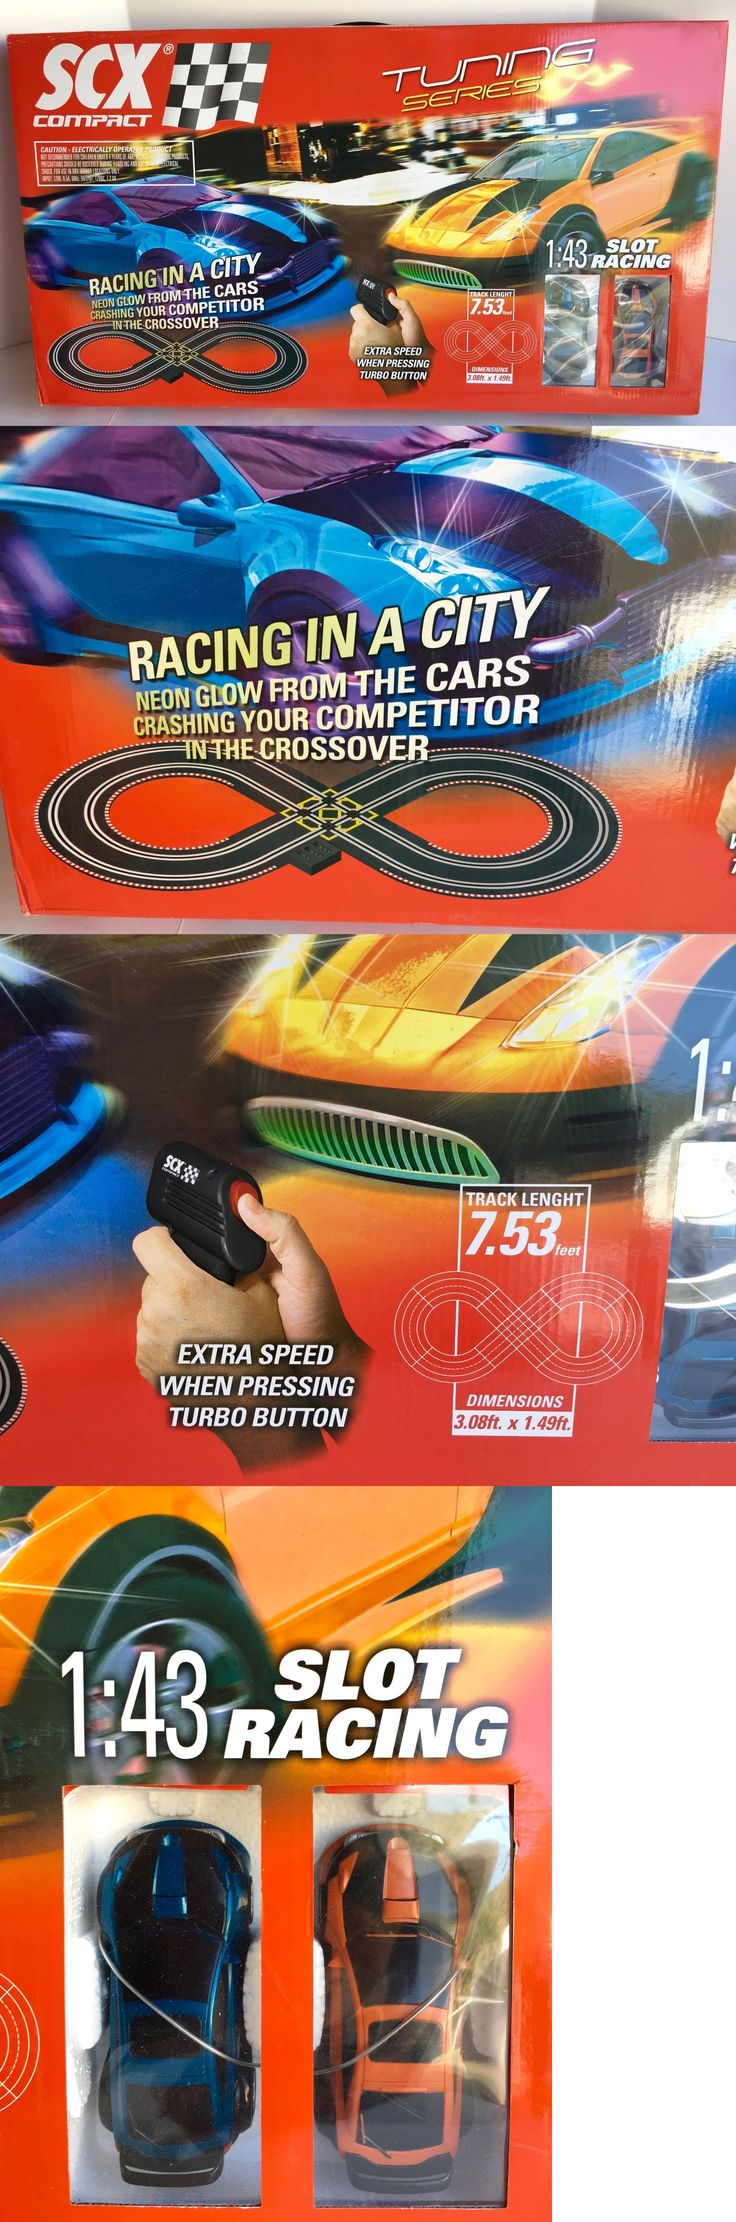 1970-Now 7318: Scx Slot Car Race Set With Extra Accessories! 1:43 Scale Lot A -> BUY IT NOW ONLY: $149 on eBay!